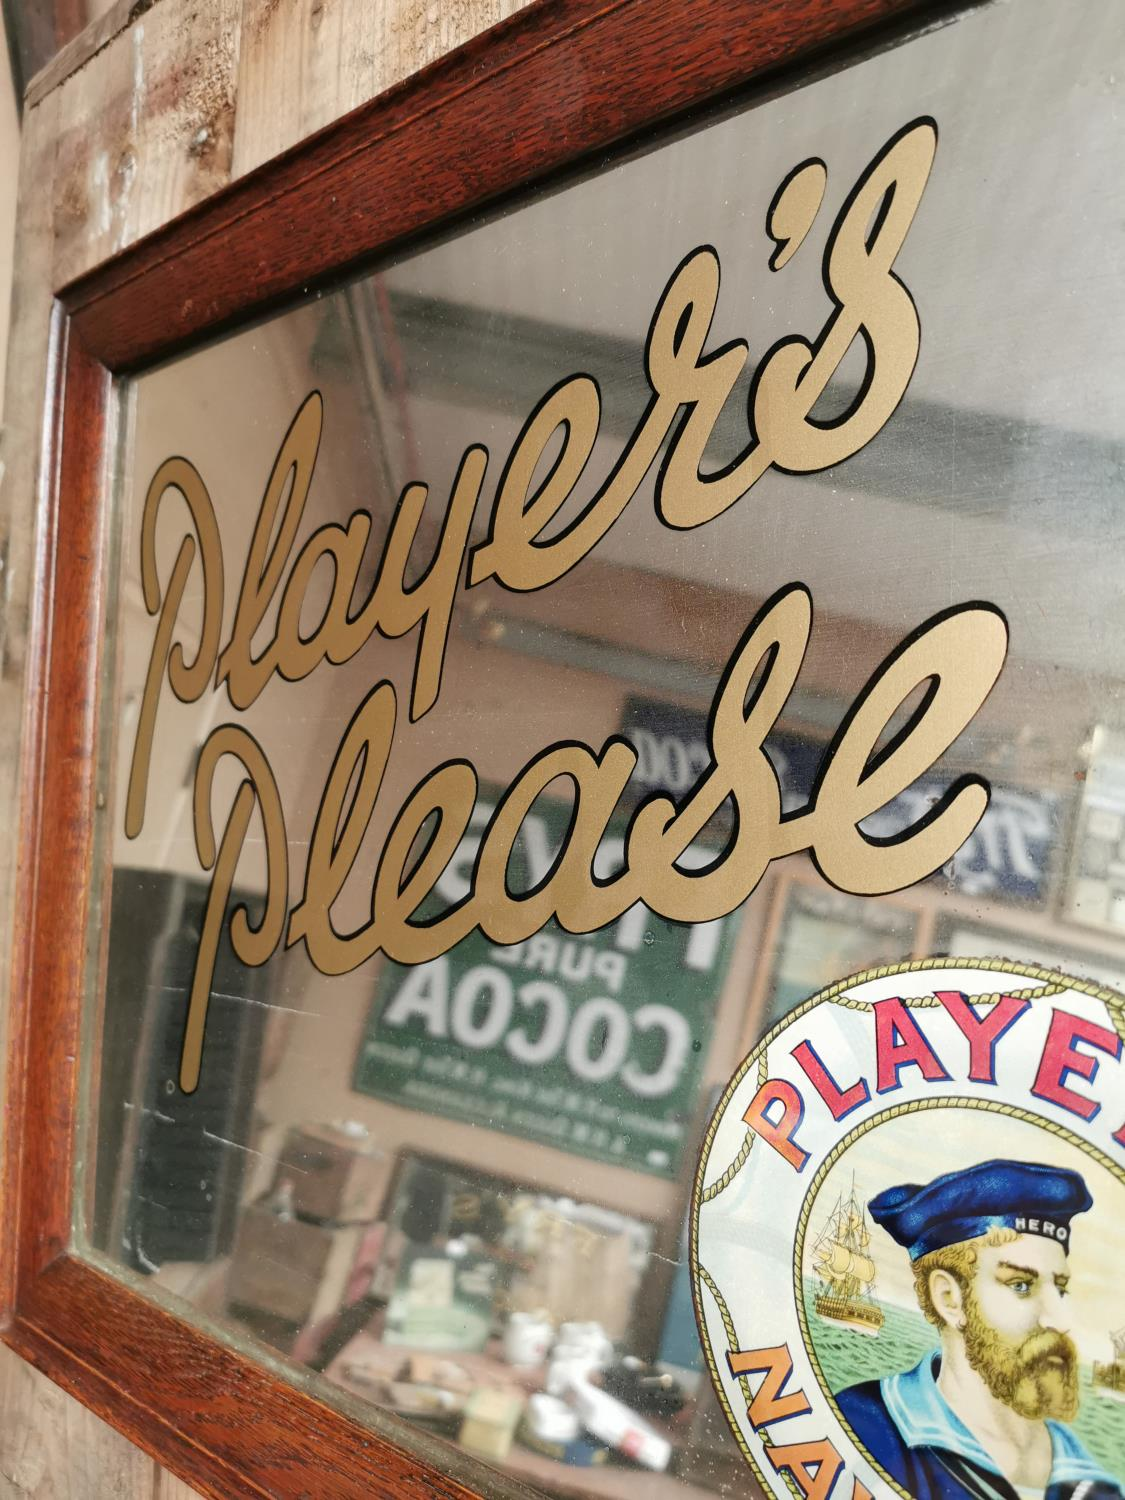 Players Please Navy Cut advertising mirror. - Image 3 of 3